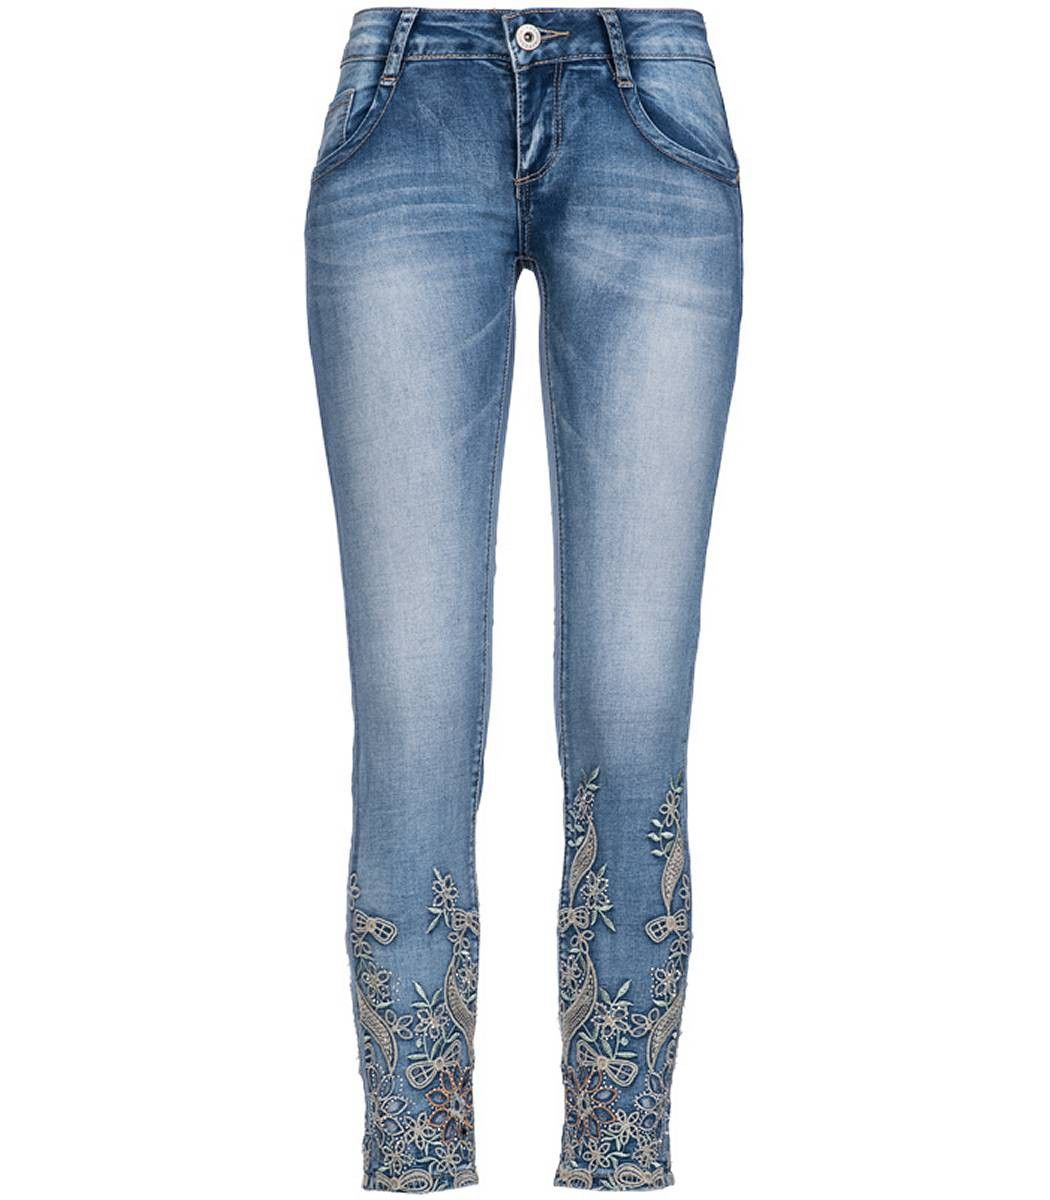 madonna damen jeans stretch hose crash mit strass strass jeans pinterest. Black Bedroom Furniture Sets. Home Design Ideas